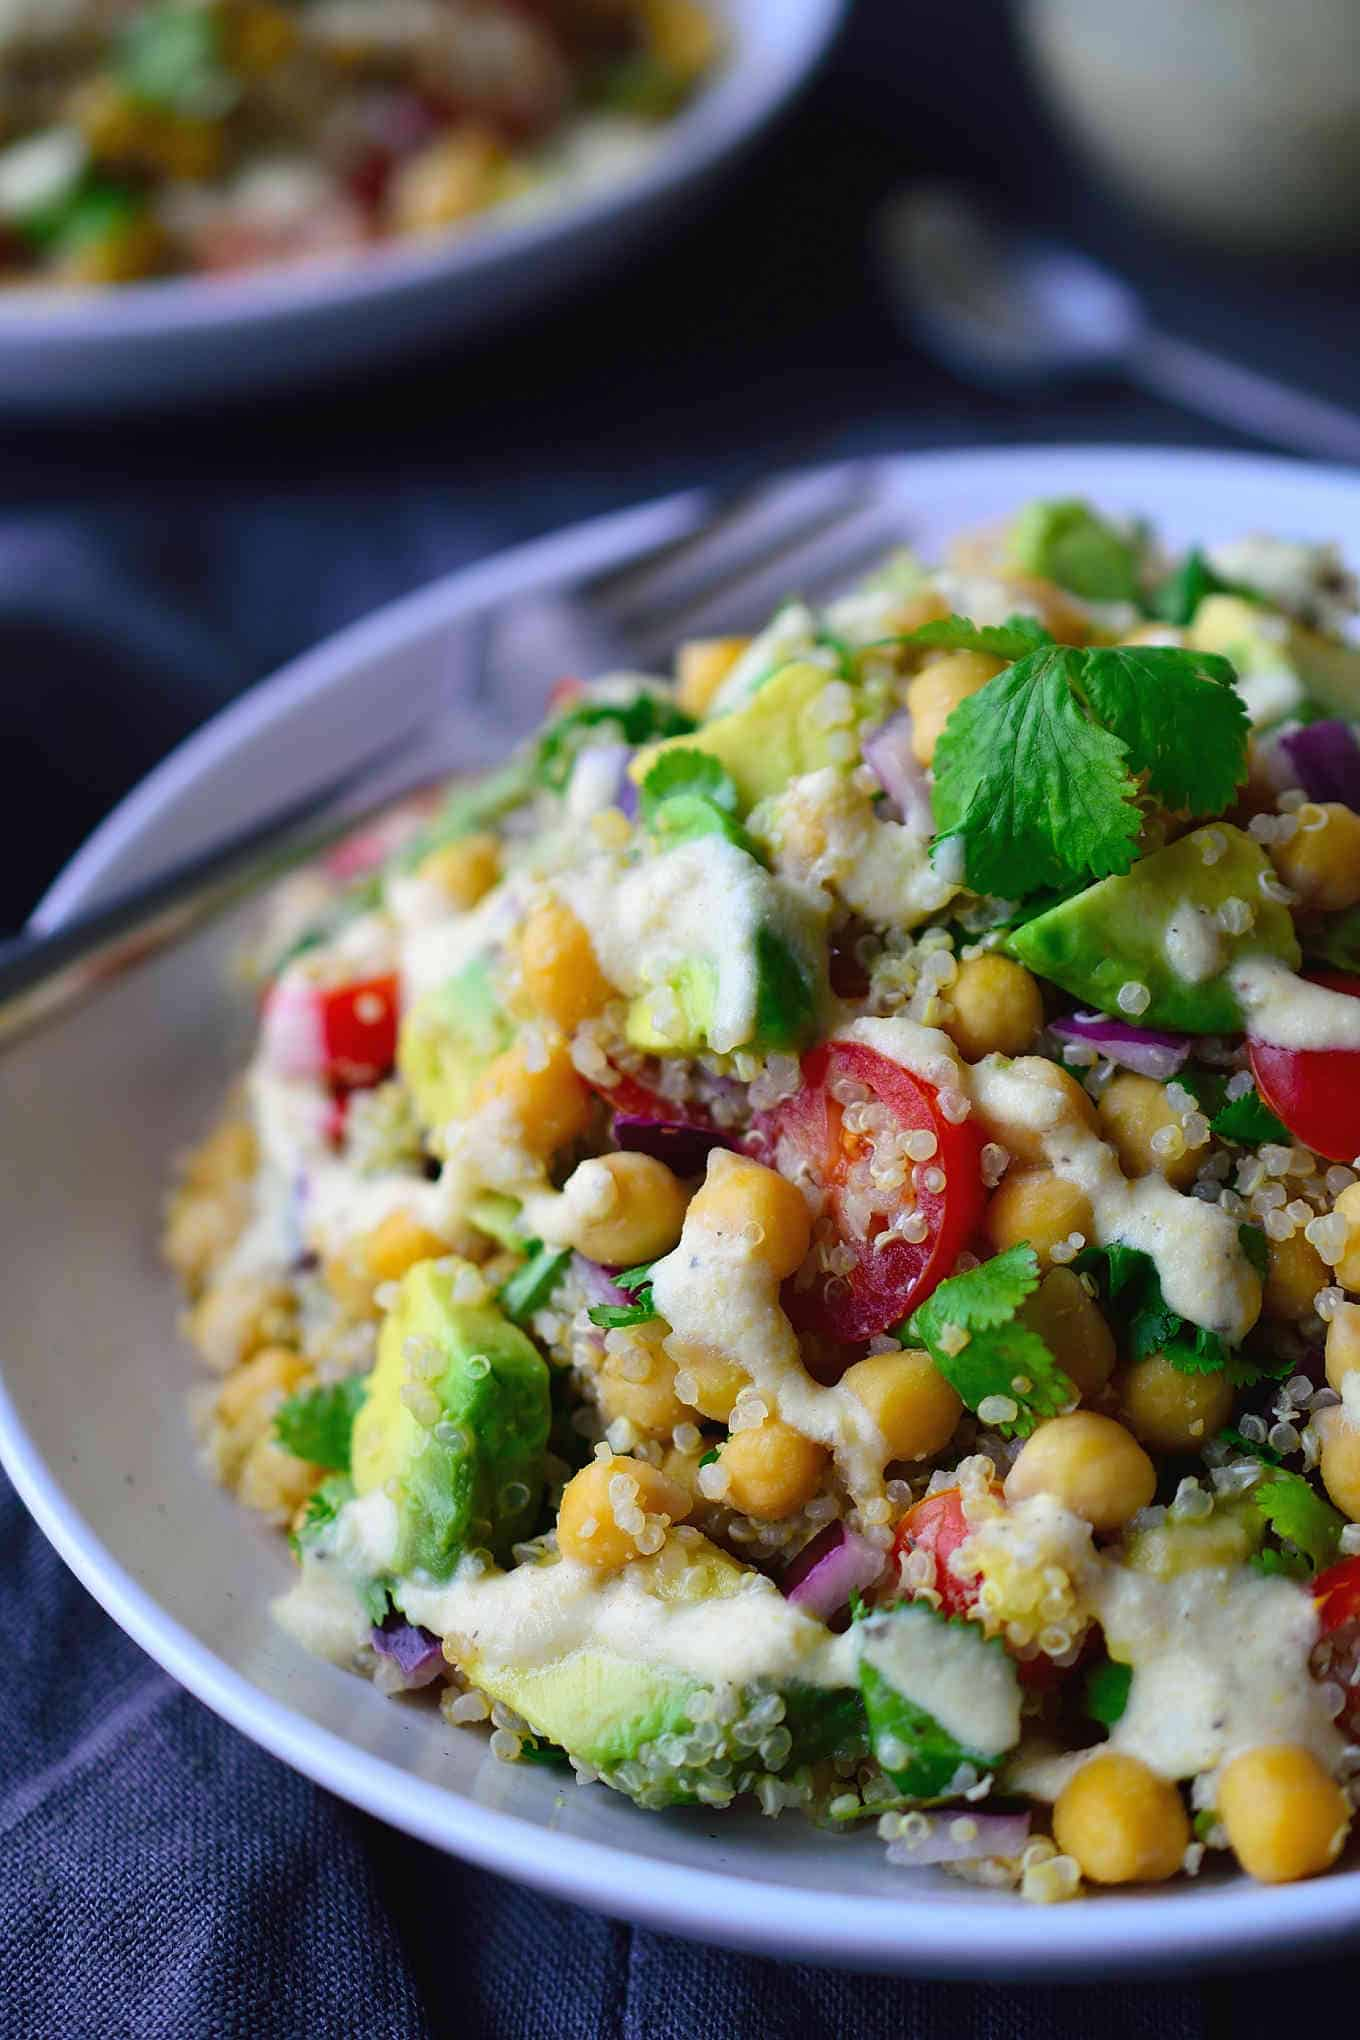 This chickpea avocado salad is super easy to make and great for a weekday lunch, side dish or to take to a potluck, picnic or BBQ. You can choose to serve this salad as-is with a squeeze of lemon juice, or whip up a creamy vegan dressing to drizzle over top. Either way it's a hearty, protein-packed and delicious salad that will keep you full for hours!